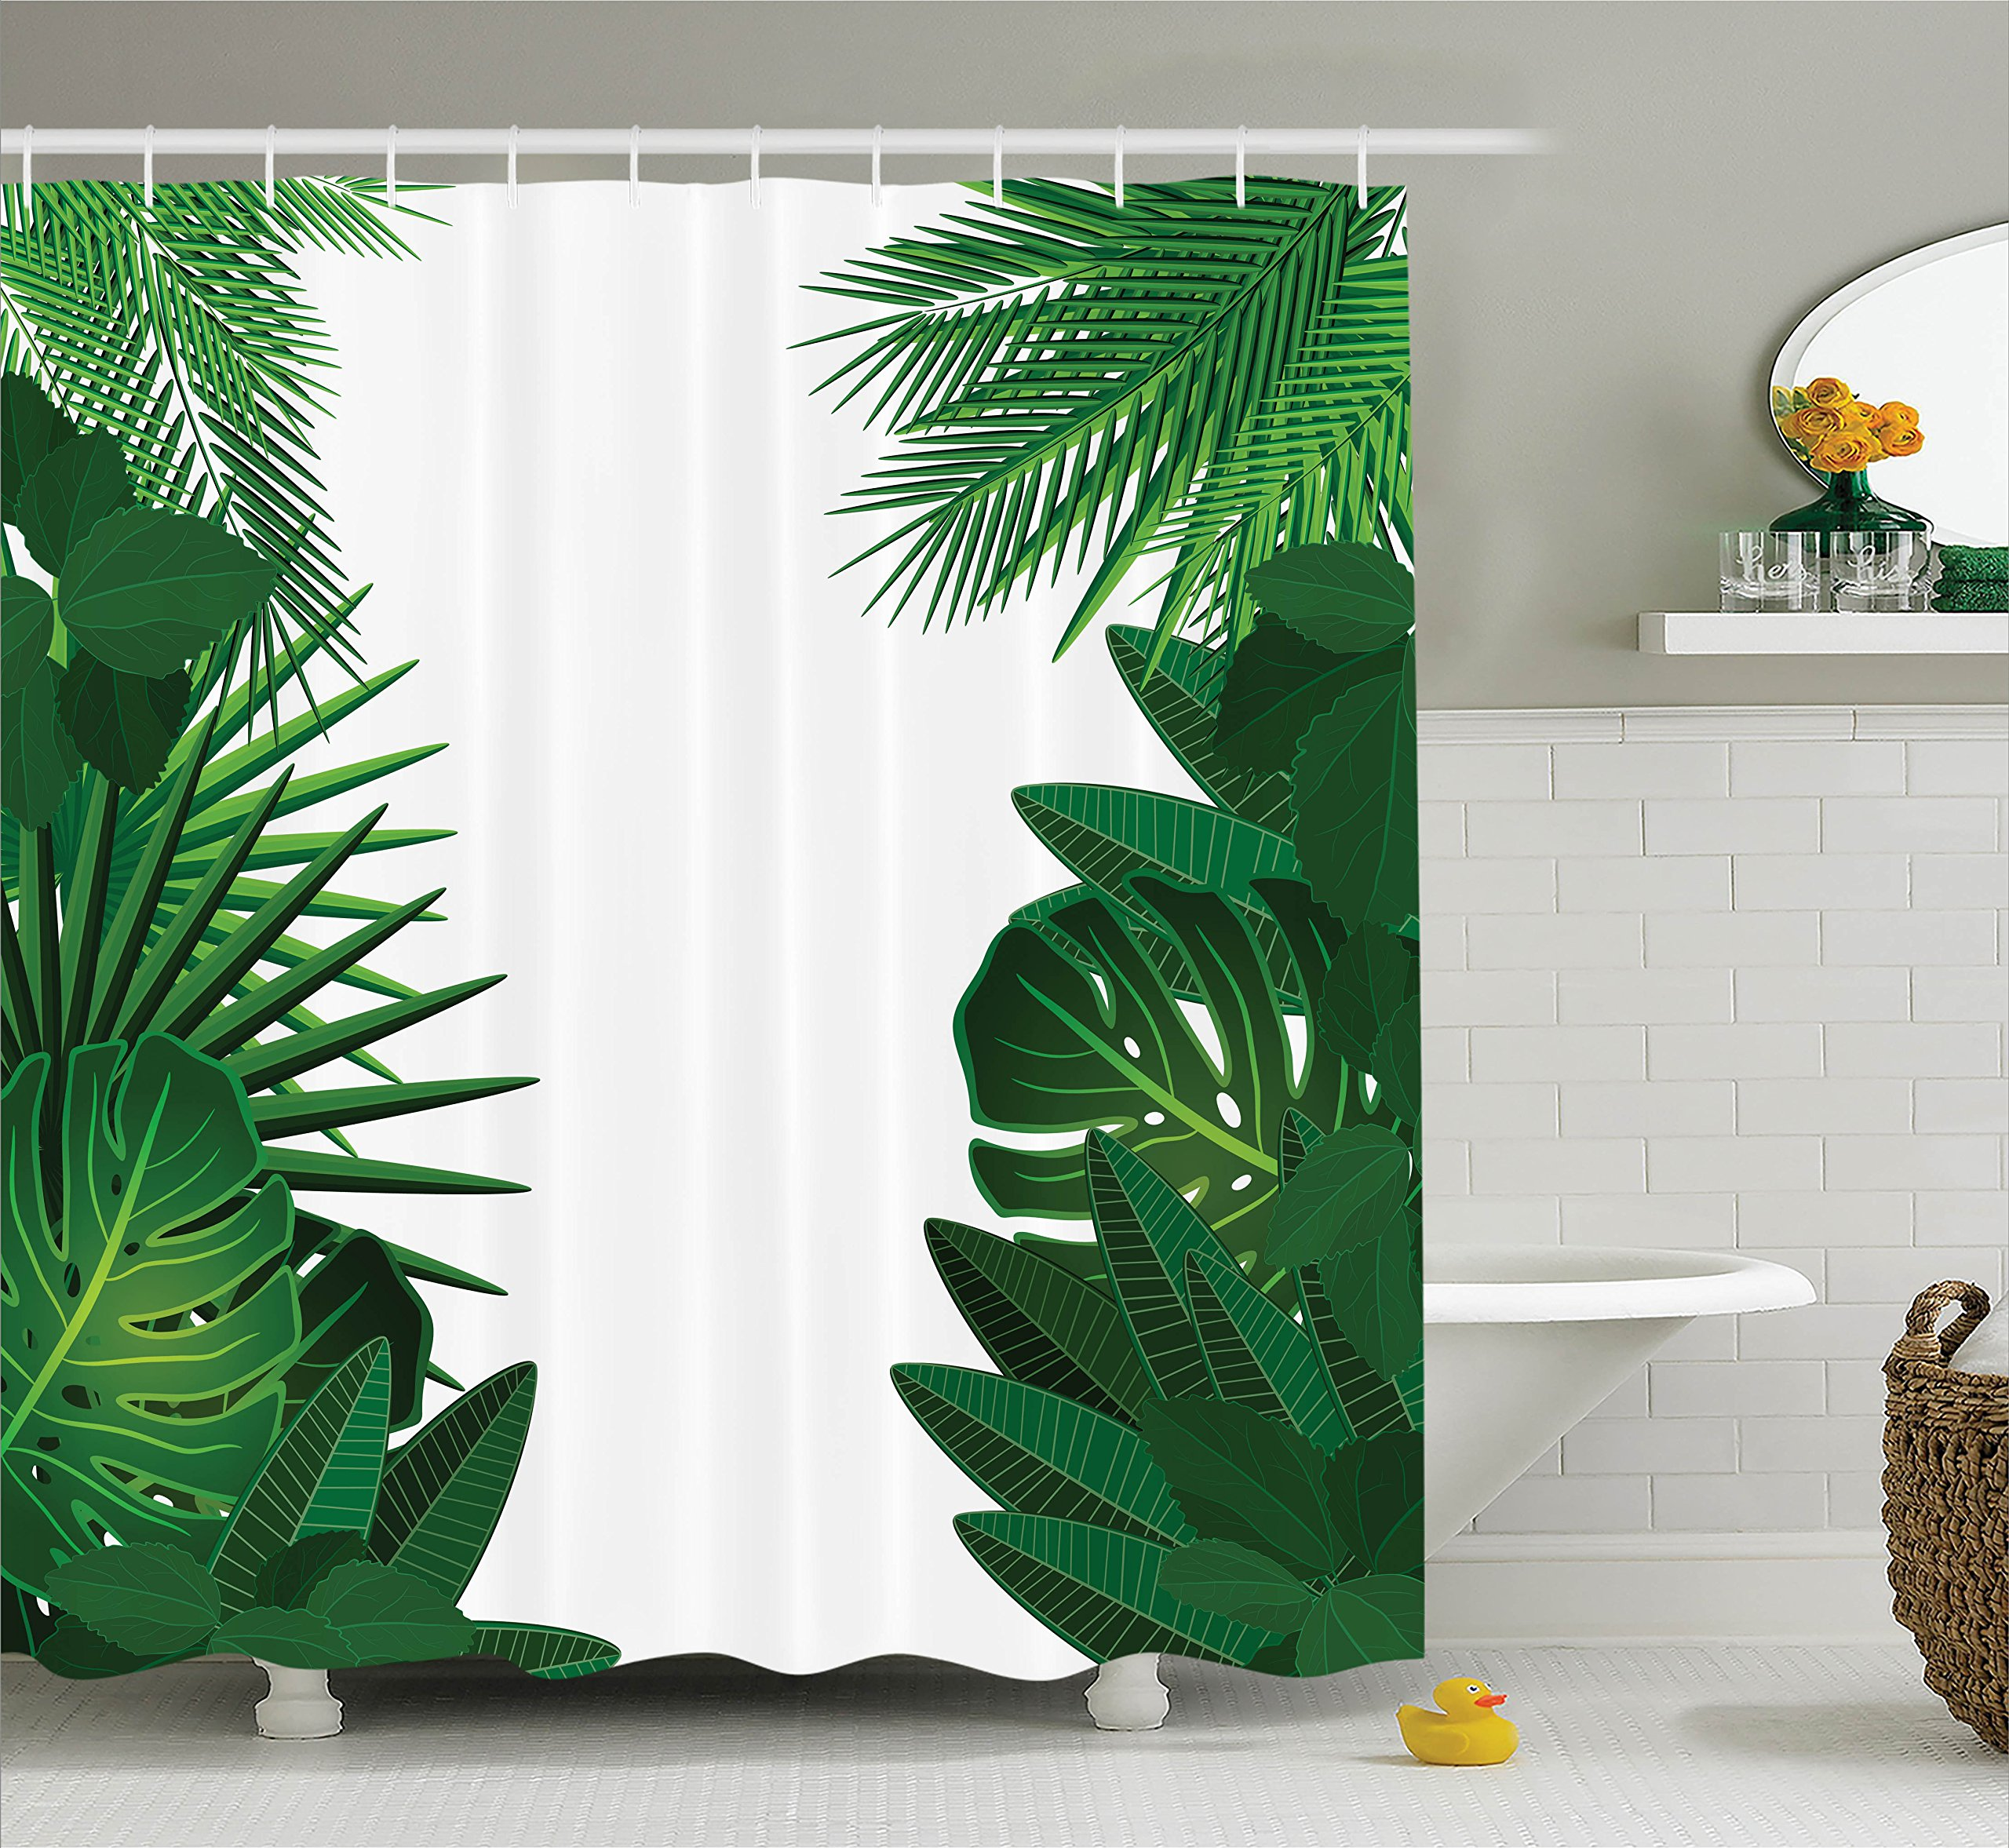 Ambesonne Leaves Decor Shower Curtain Set, Exotic Fantasy Hawaiian Tropical Palm Leaves with Stylish Floral Graphic Illustrated Art, Bathroom Accessories, 69W X 70L inches, Green White